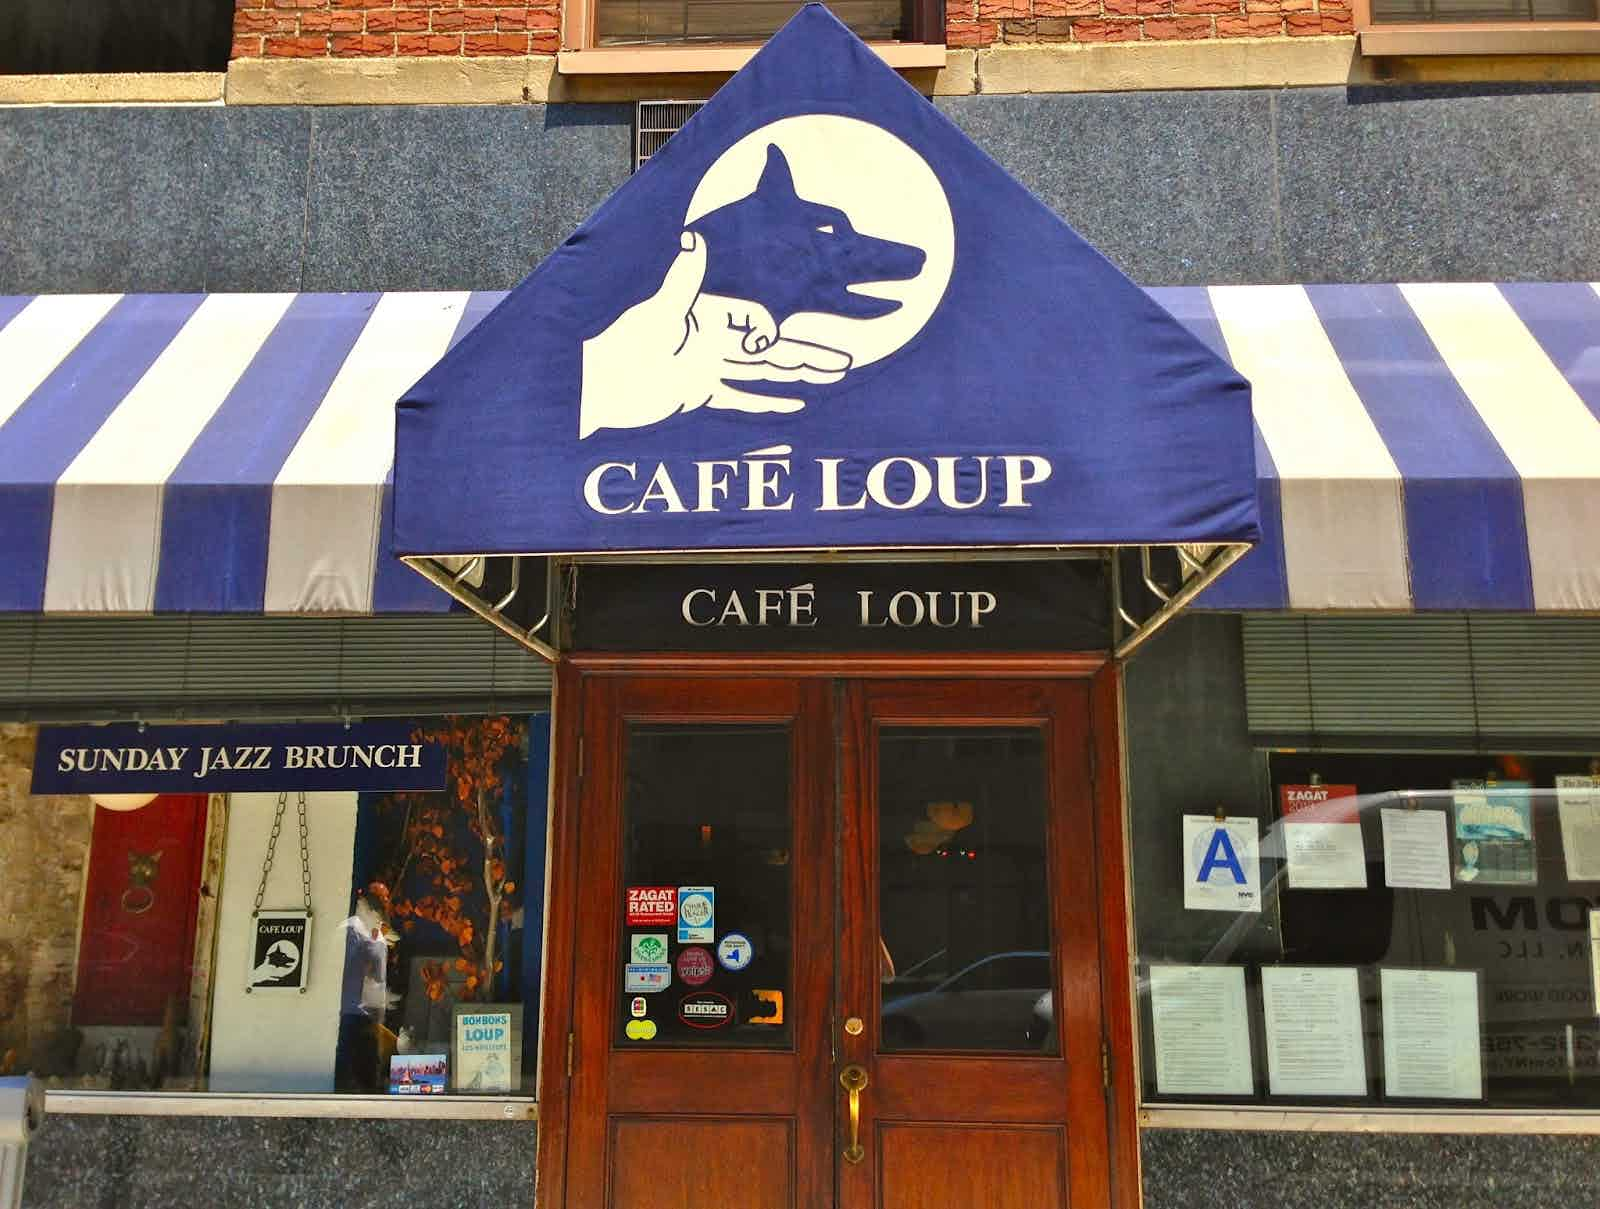 Exterior of Cafe Loup